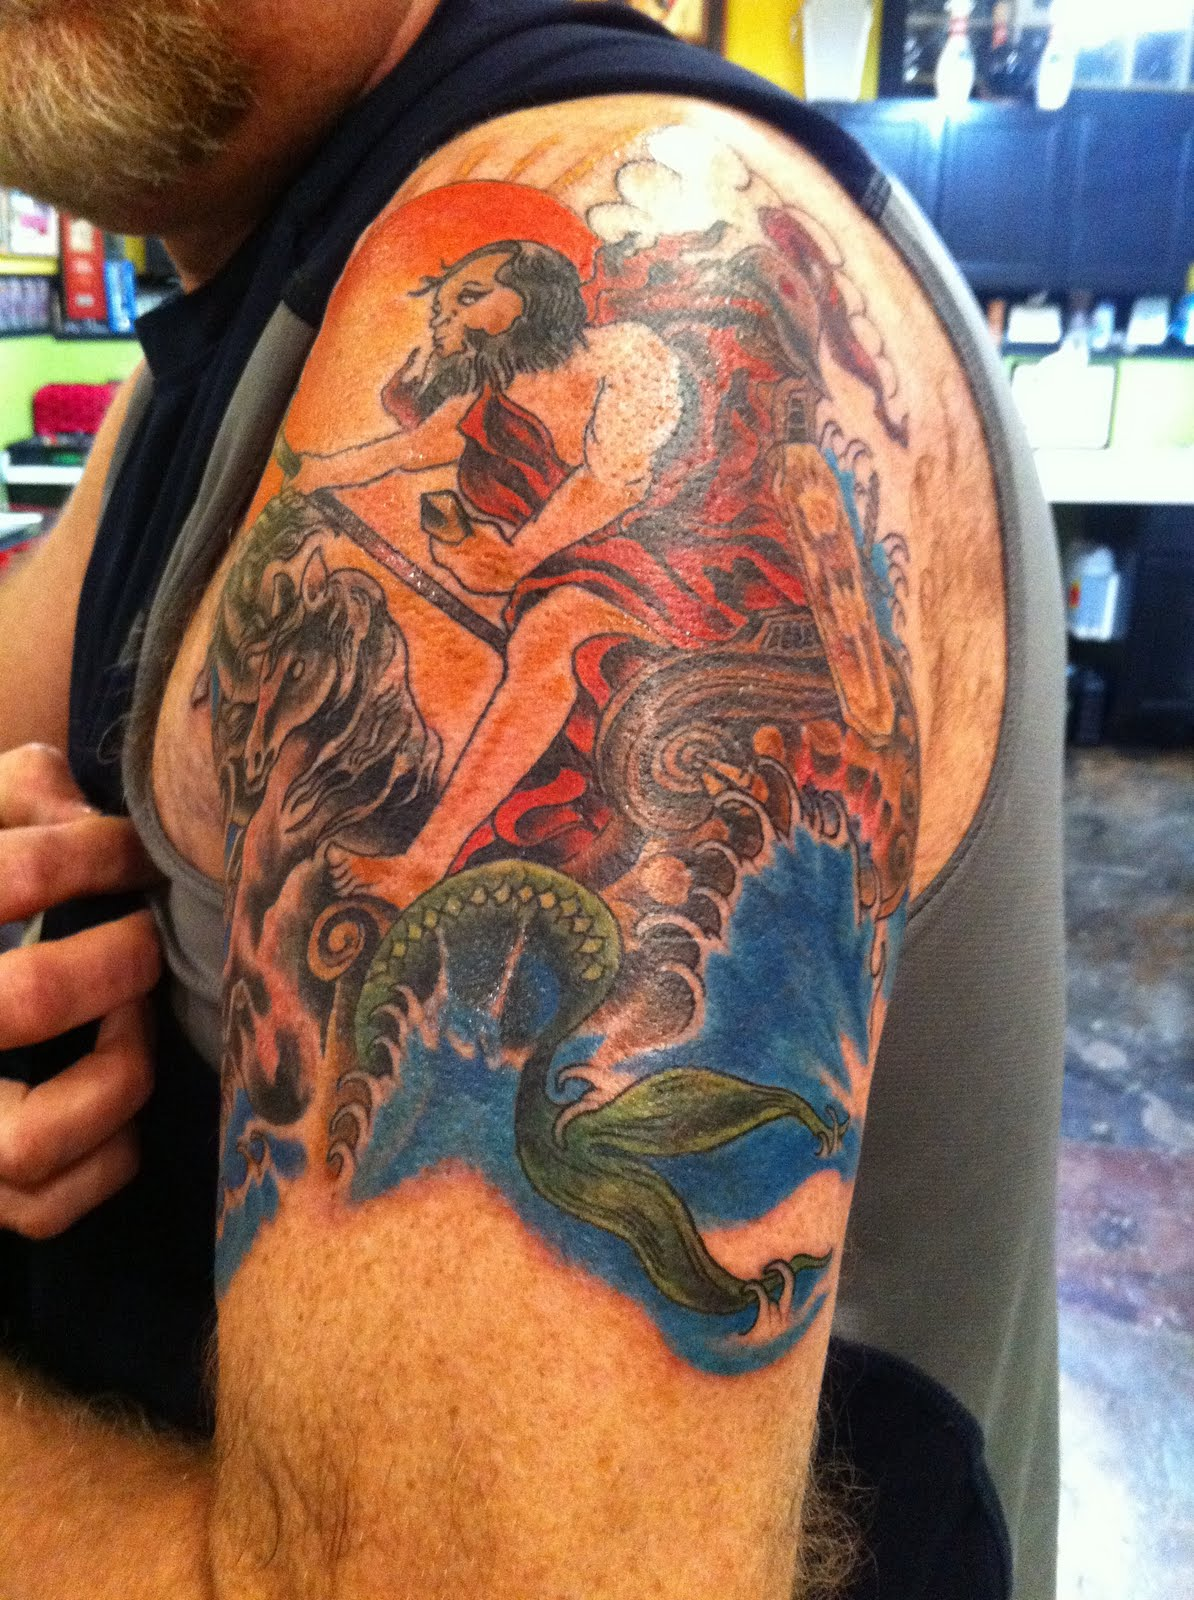 Miss Kitty...Tattoos, Art And Happenings: Chuck's